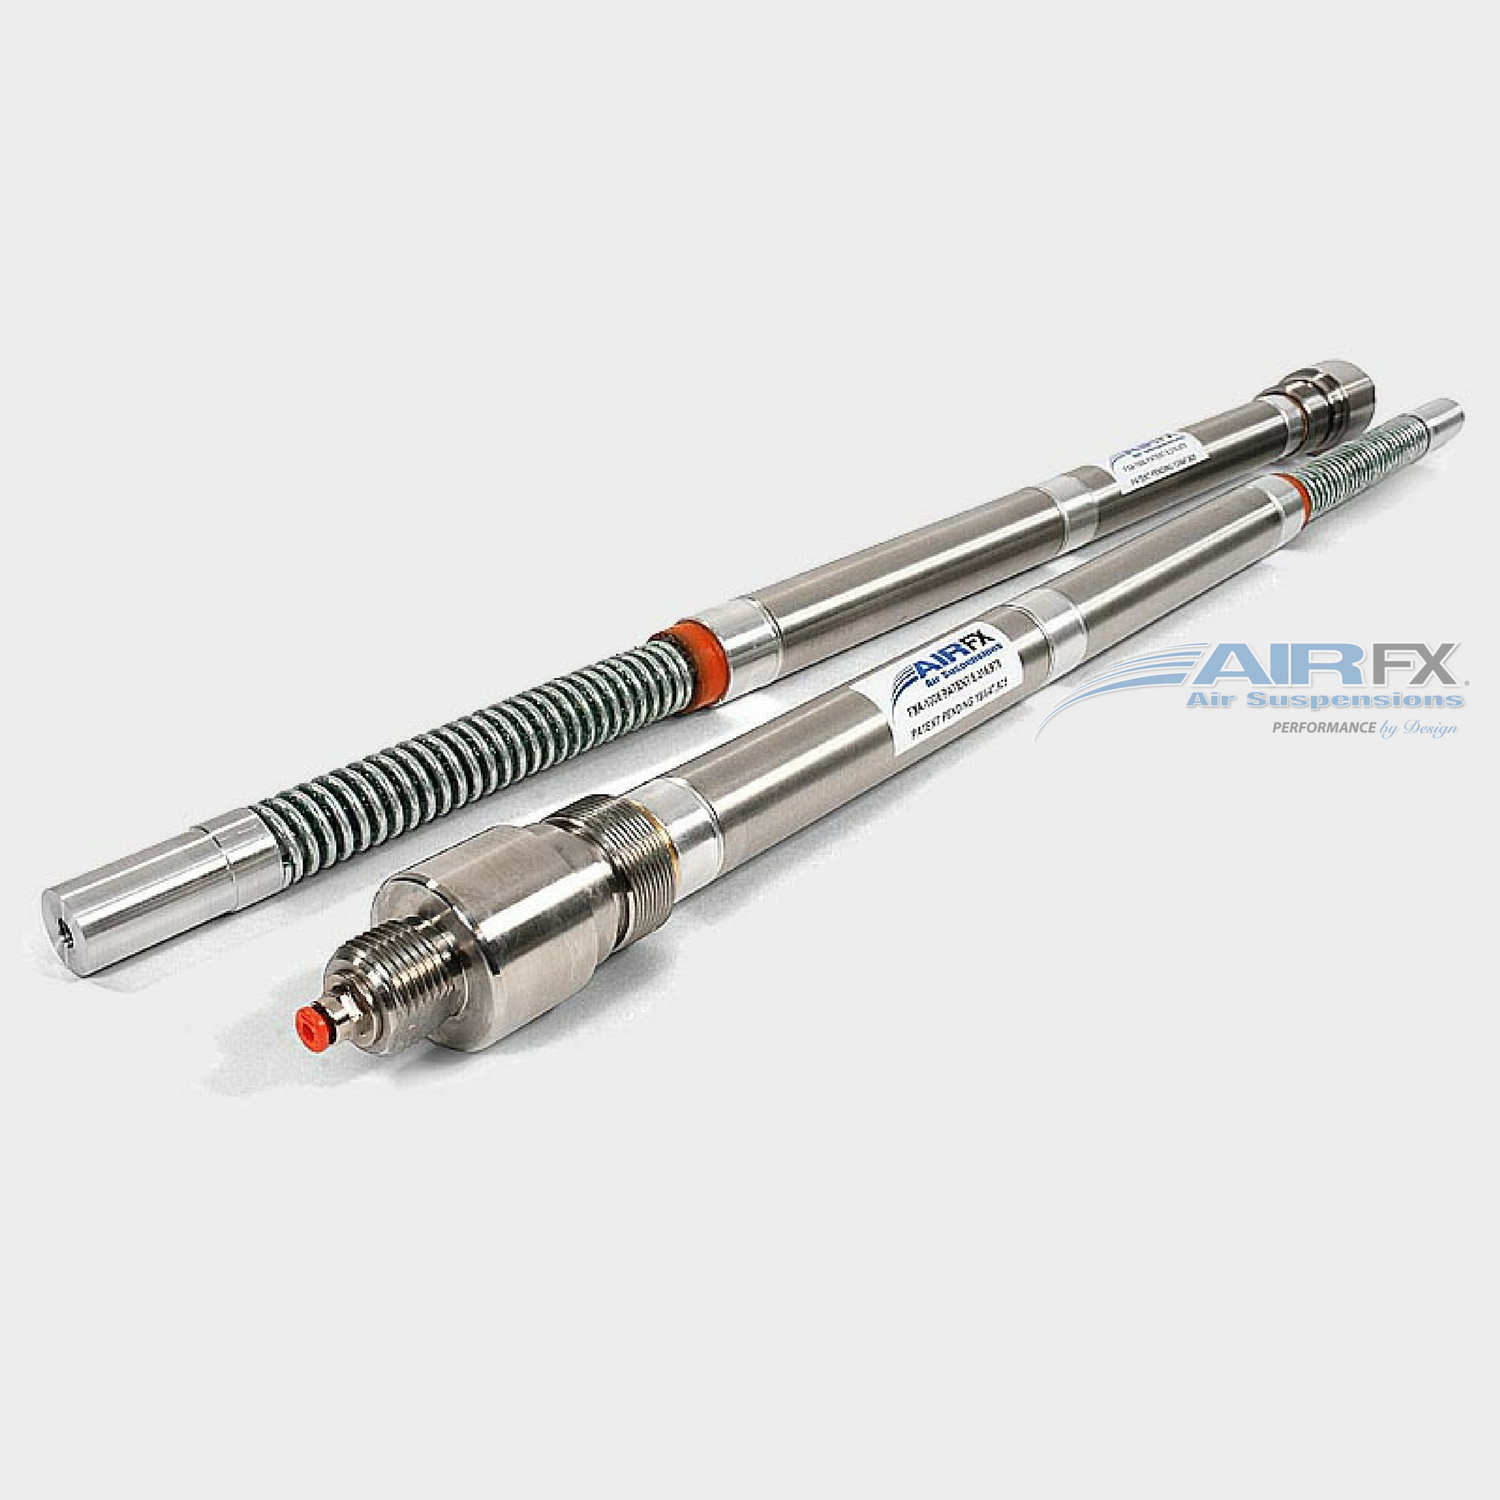 41mm Front Cartridge Pair with HHI for 26'' wheel long neck (FXA-2016-2L) [+$1,370.00]